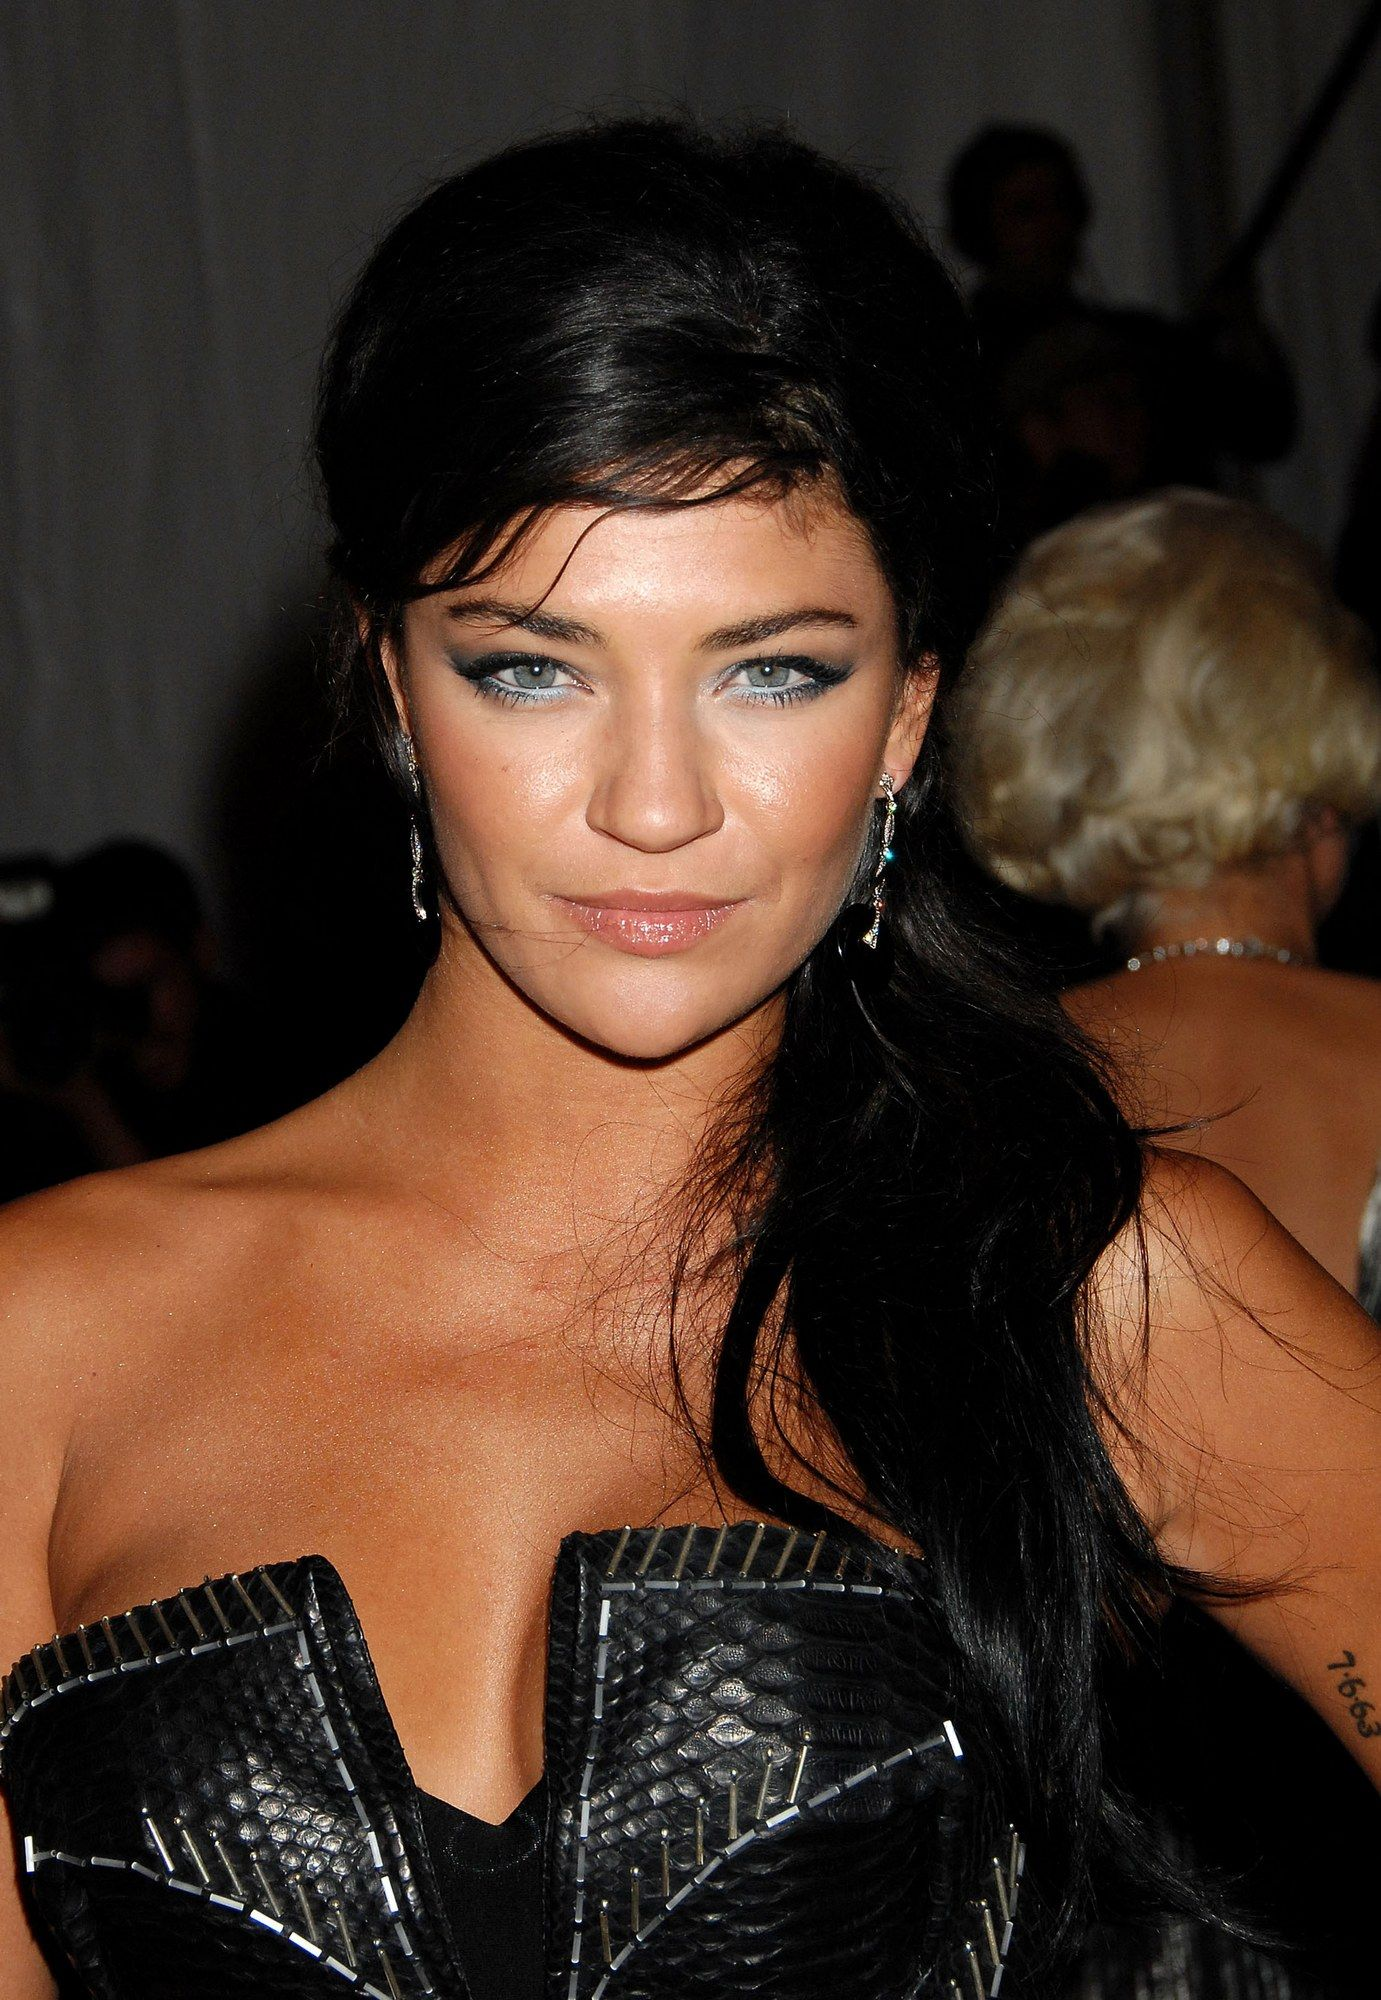 Young Jessica Szohr nudes (12 foto and video), Pussy, Leaked, Selfie, in bikini 2017